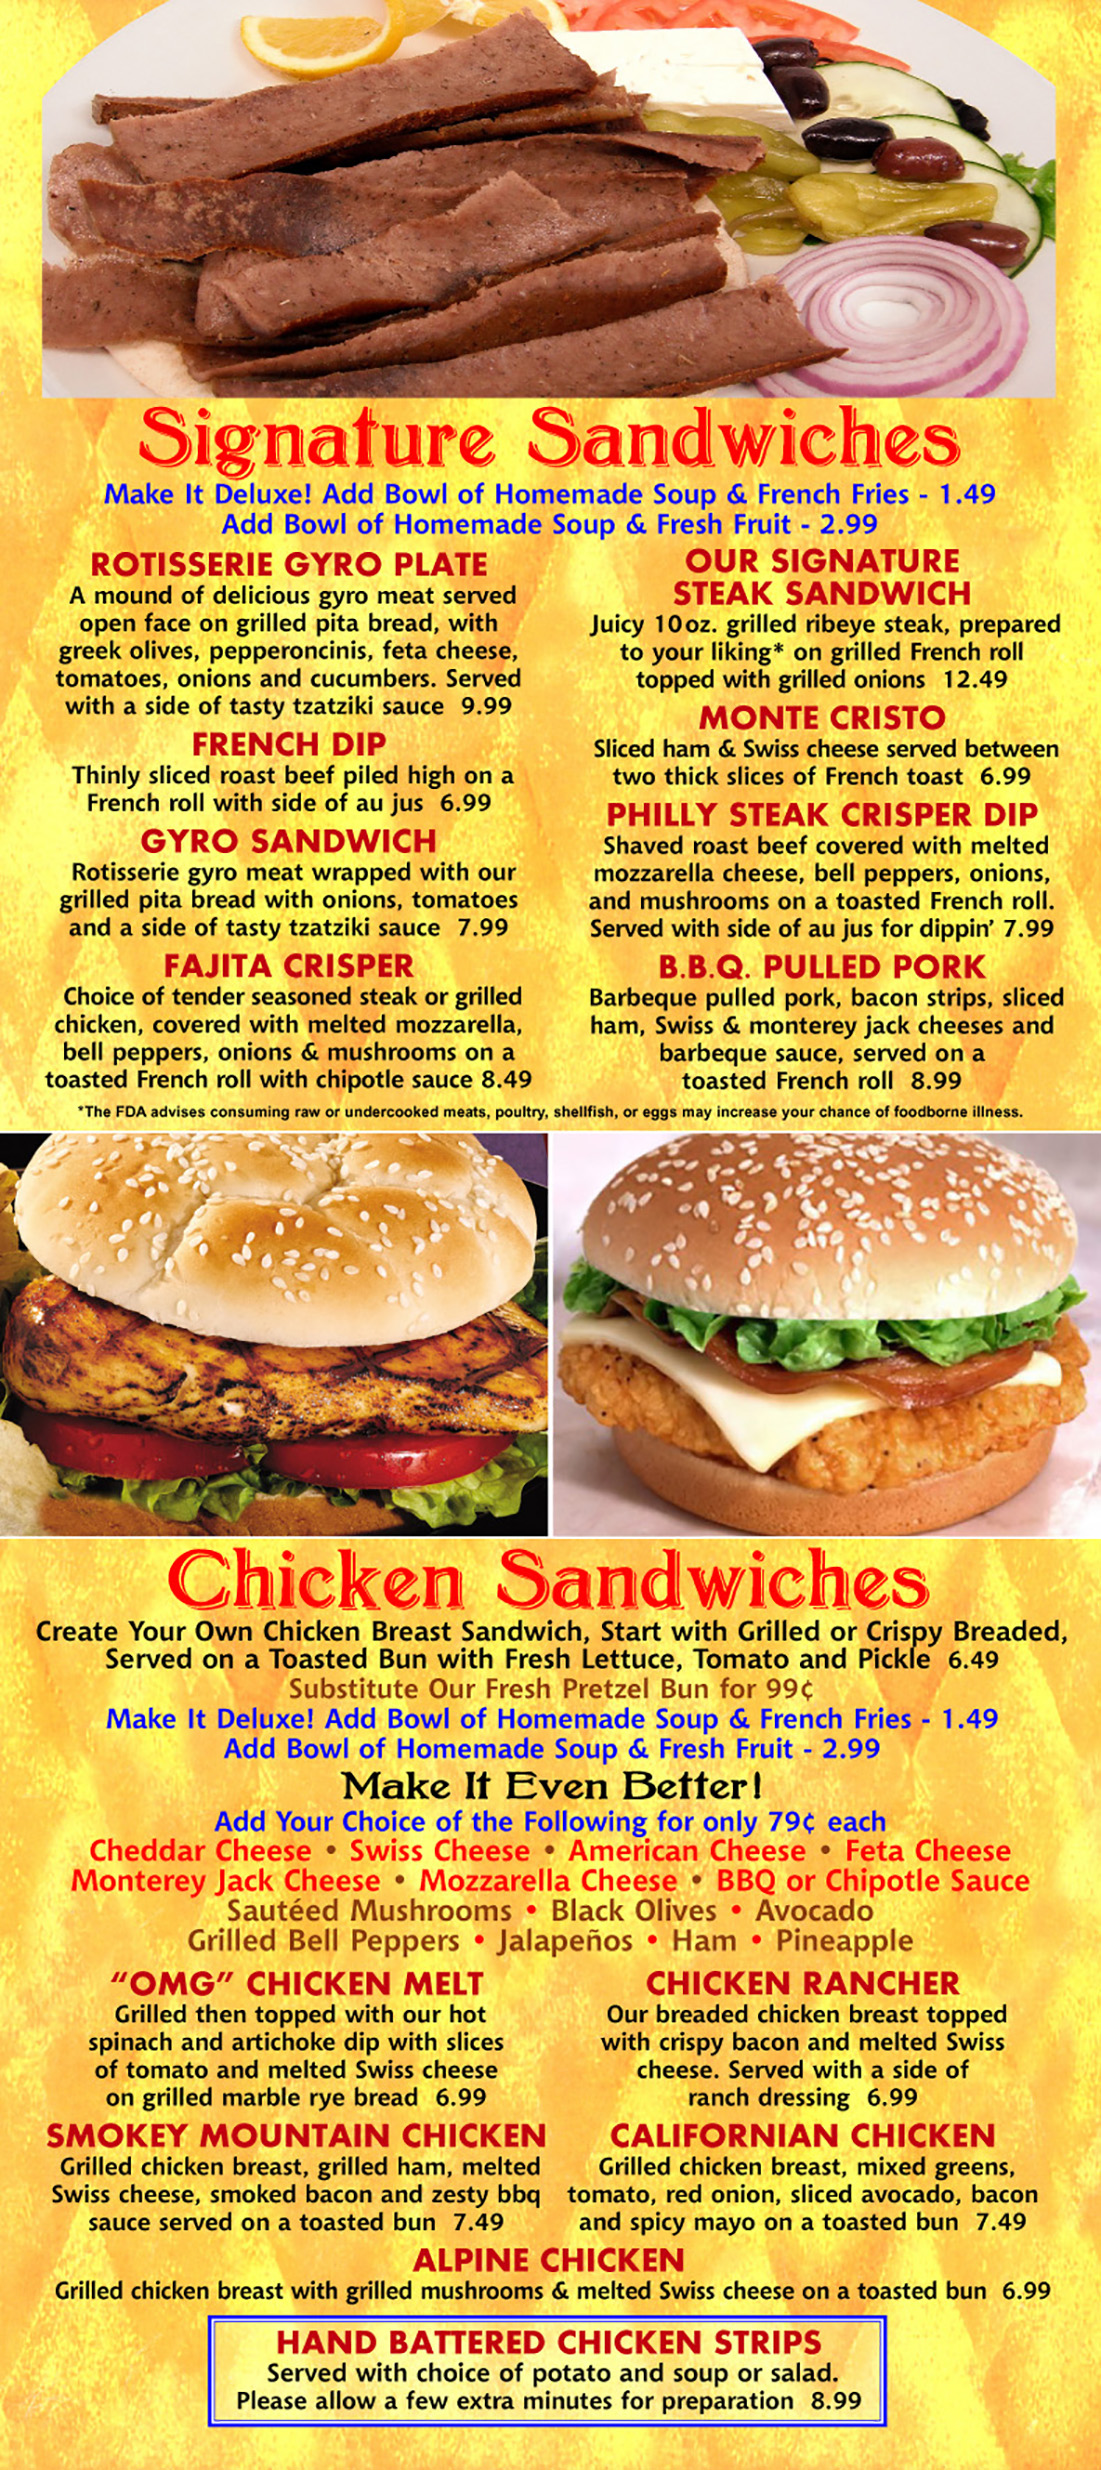 Signature & Chicken Sandwiches